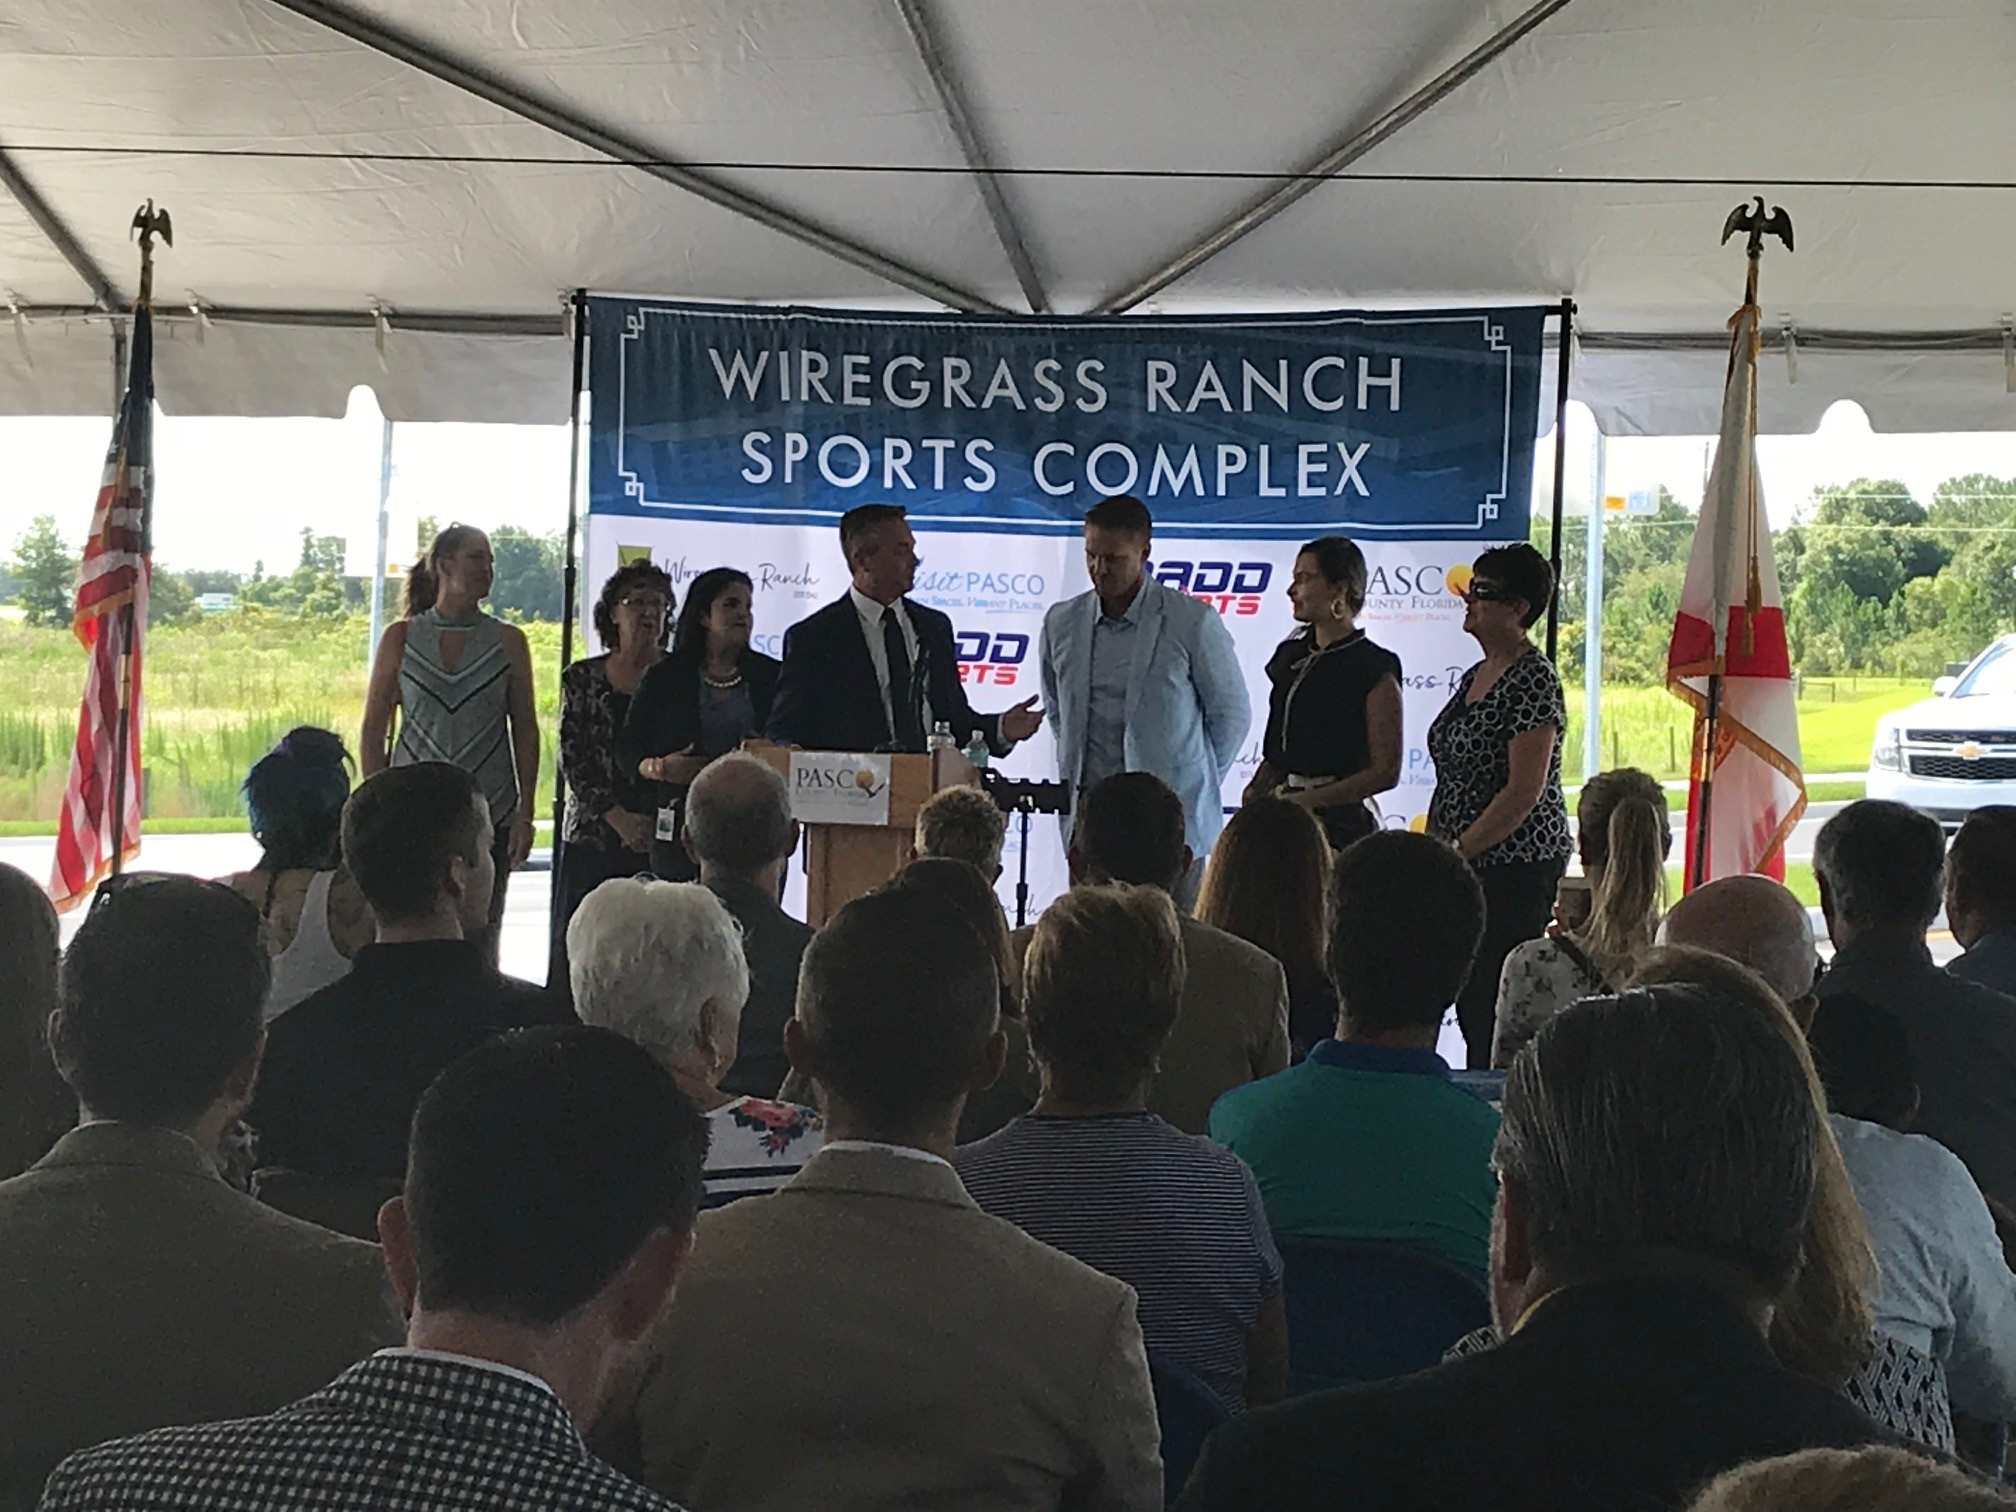 Pasco County held the $40+ million Wiregrass Ranch Sports